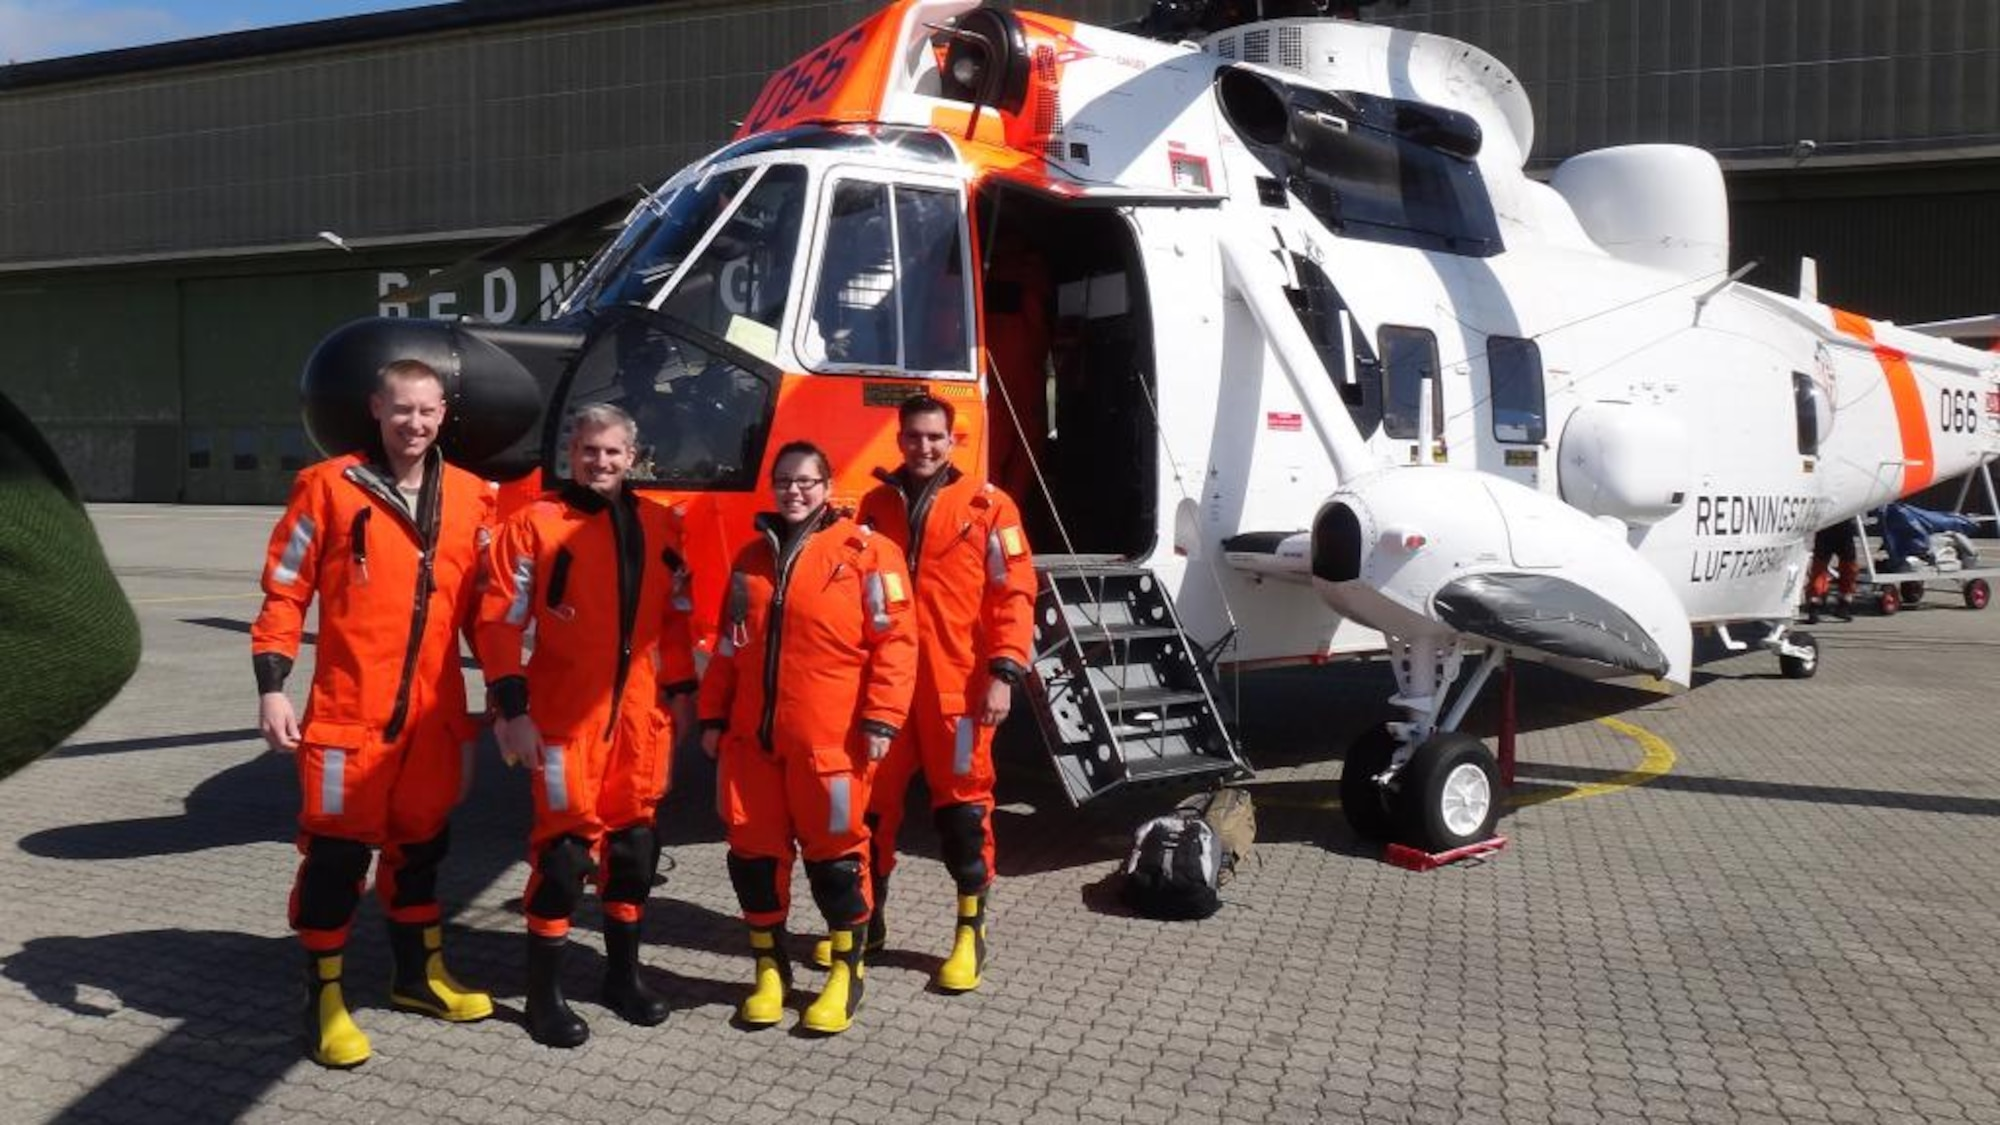 From left, Tech. Sgt. Tim Carlsrud, Maj. Kevin Catron, Staff Sgt. Jennifer Thaxton and Capt. Morgan Cowle pose in front of a Royal Norwegian Air Force Mk43B Sea King in their dry suits before being ferried out to an emergency life raft for a training exercise May 13, 2014, in the North Sea. The four Airmen are all from the 426th Air Base Squadron at Stavanger, Norway (Courtesy Photo)